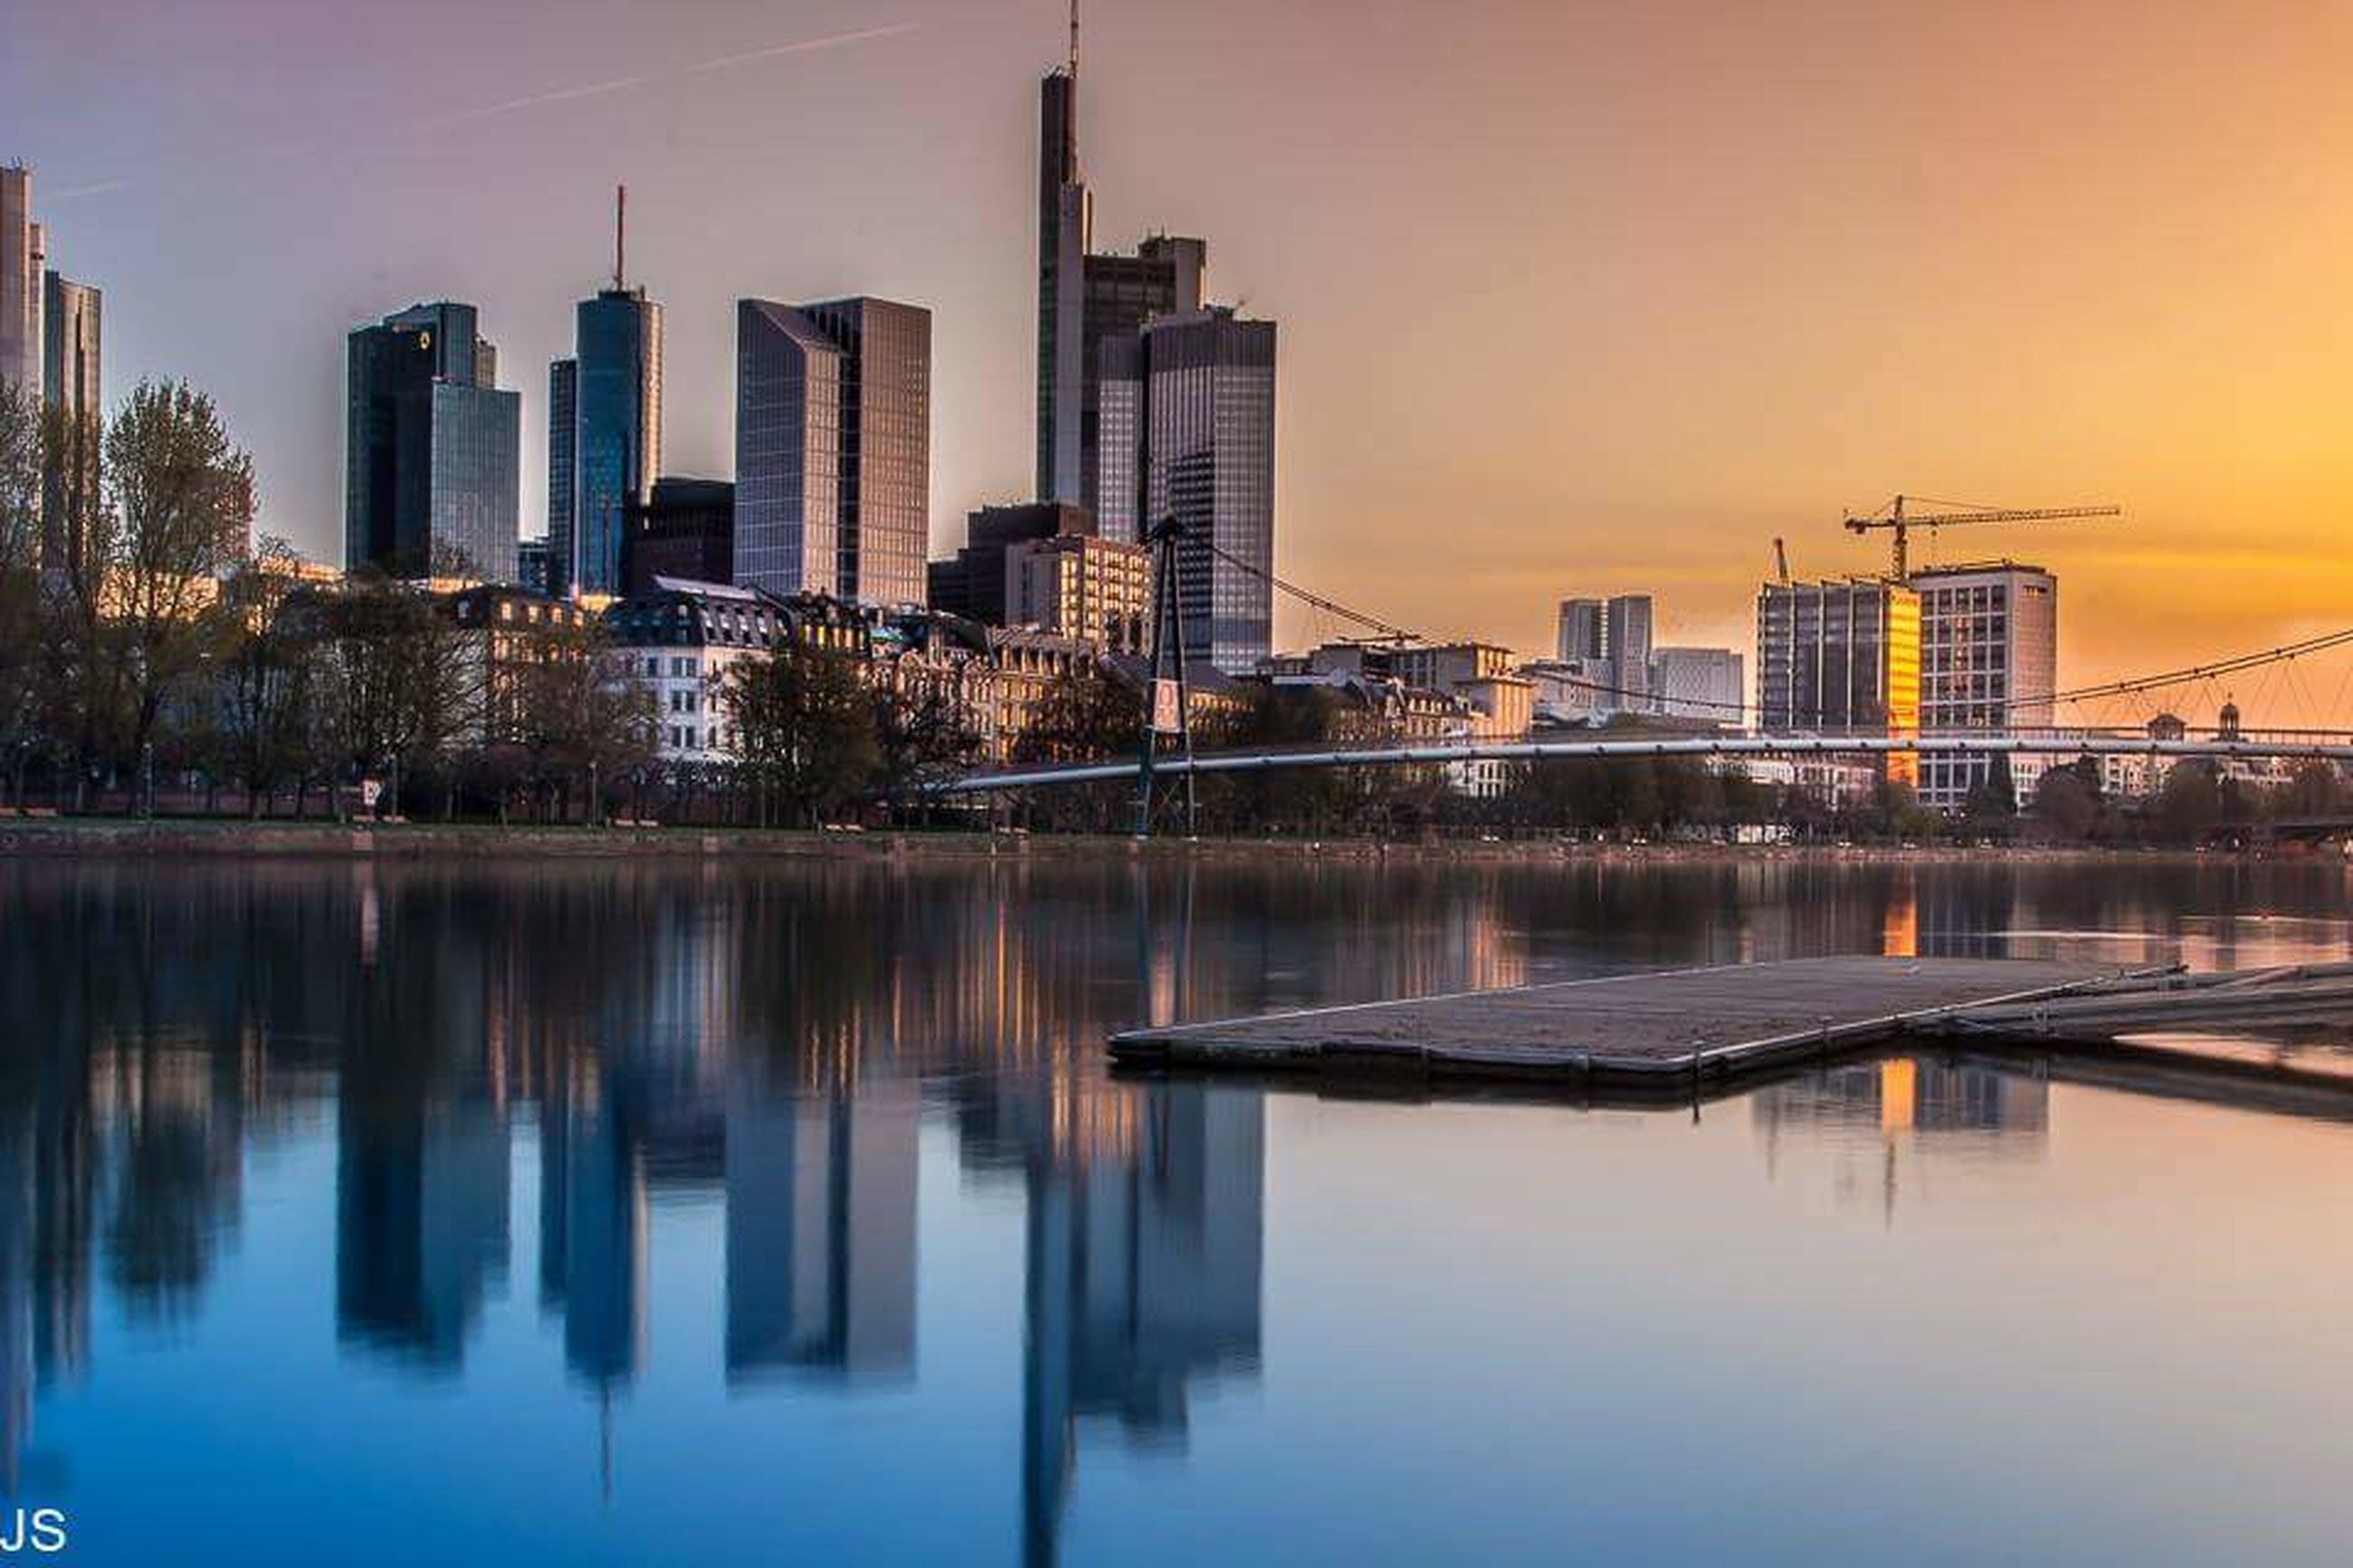 architecture, building exterior, built structure, reflection, city, water, skyscraper, waterfront, sunset, modern, office building, river, tall - high, cityscape, tower, urban skyline, sky, building, lake, skyline